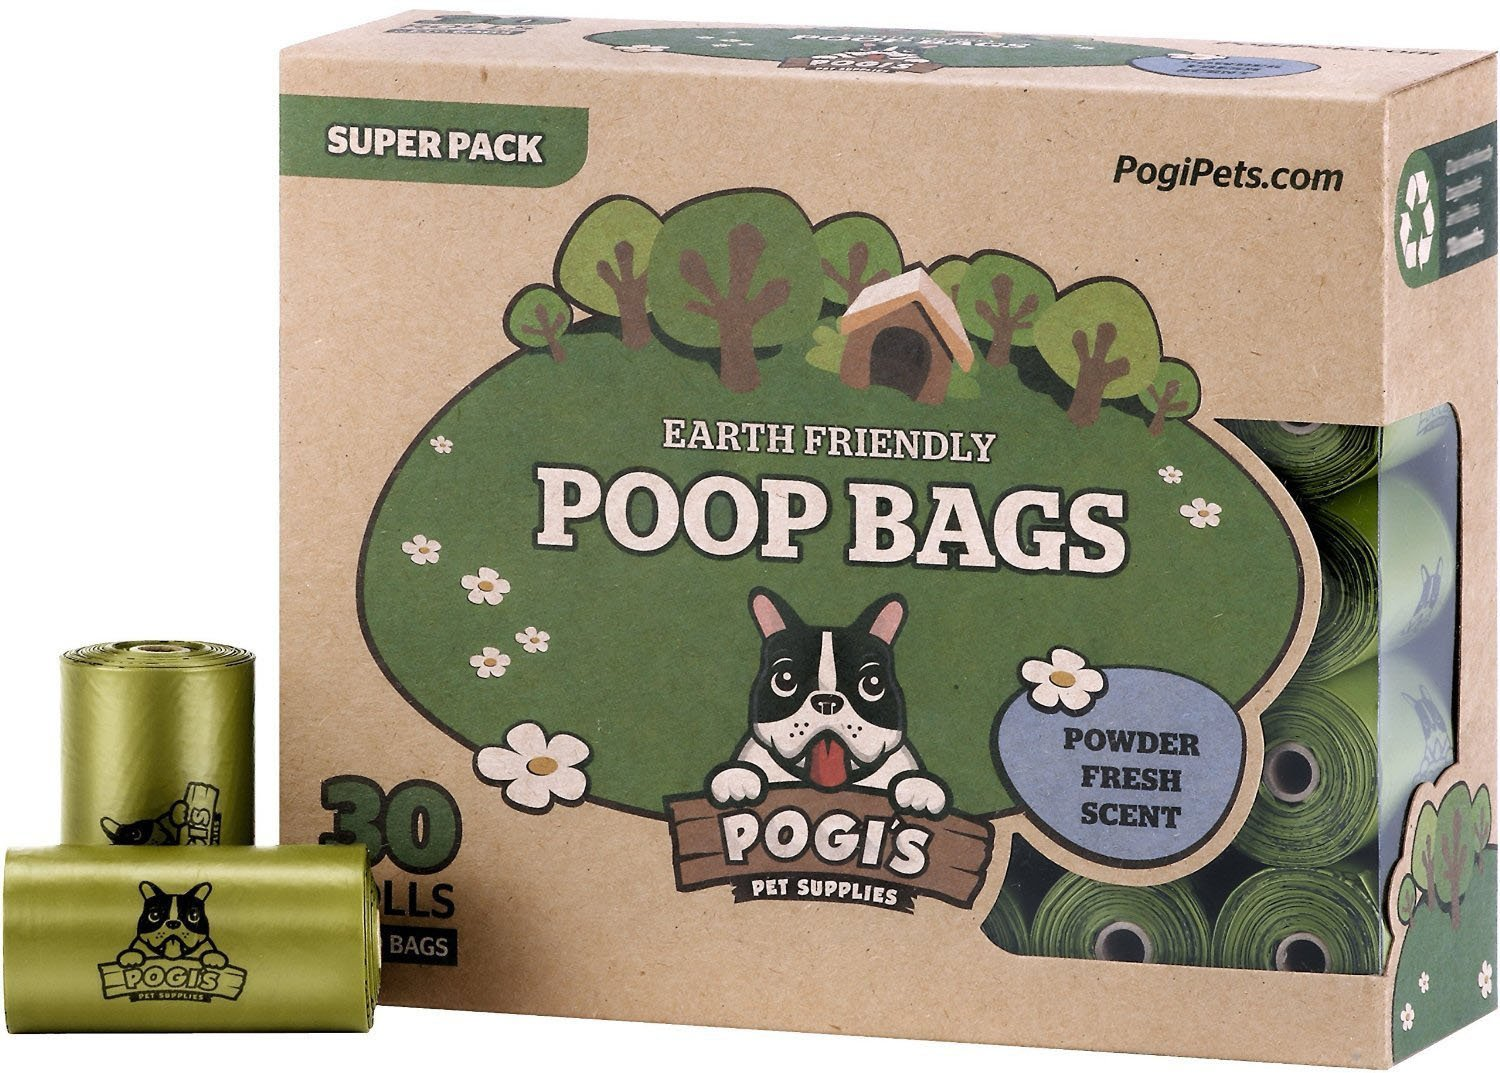 Pogis Poop Bags - Large, Earth-Friendly, Leak-Proof Dog Waste Bags